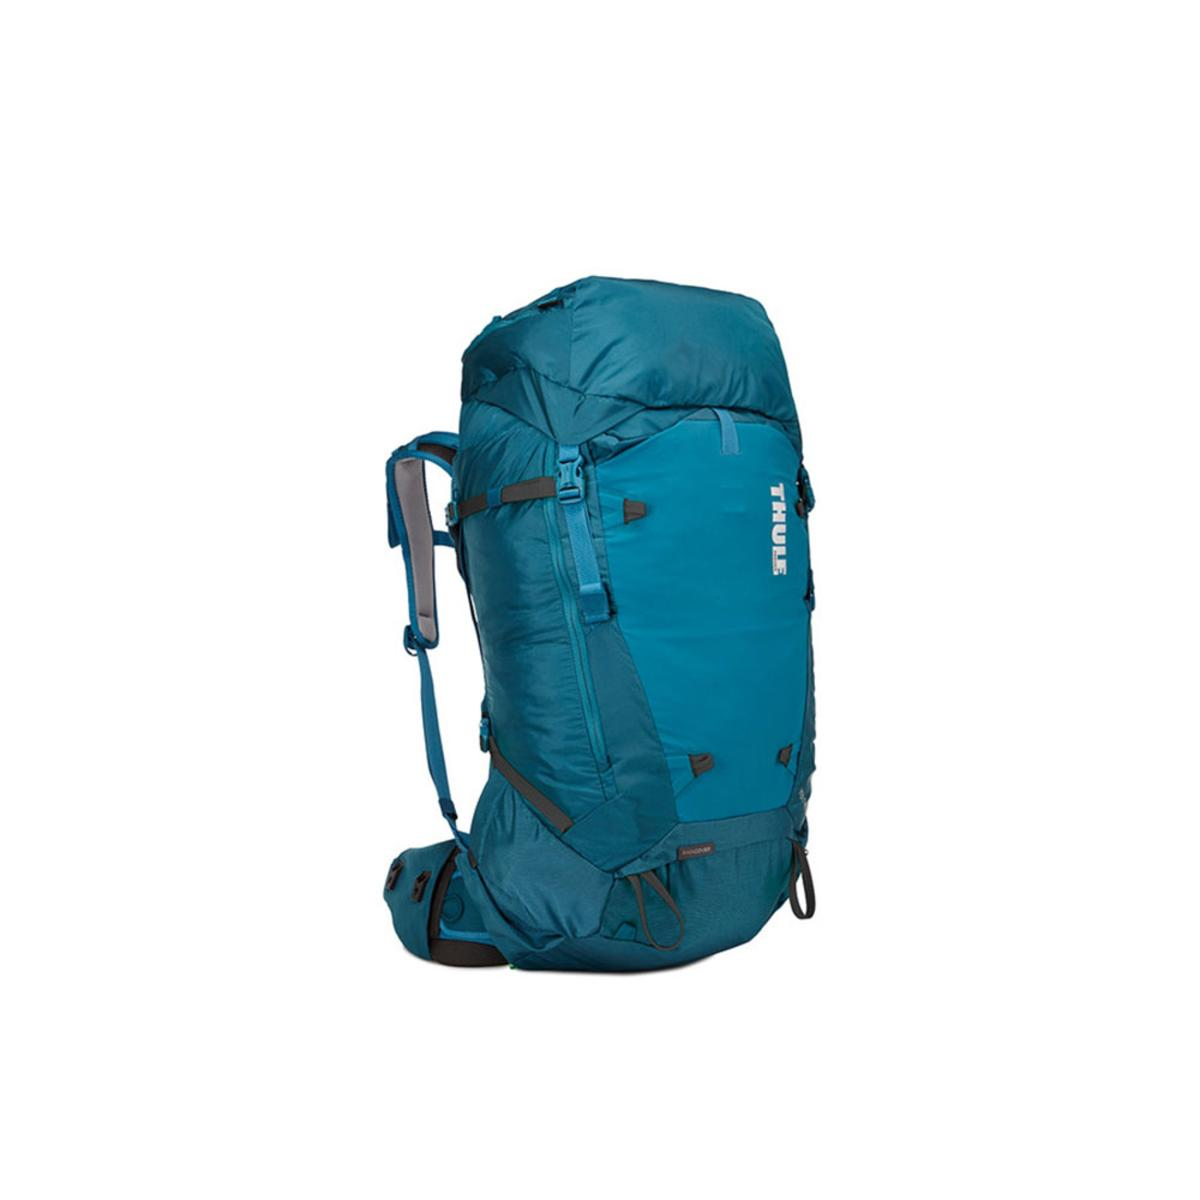 89b0542555 Thule Versant 60L Men's Backpacking Pack - Fjord - The Warming Store